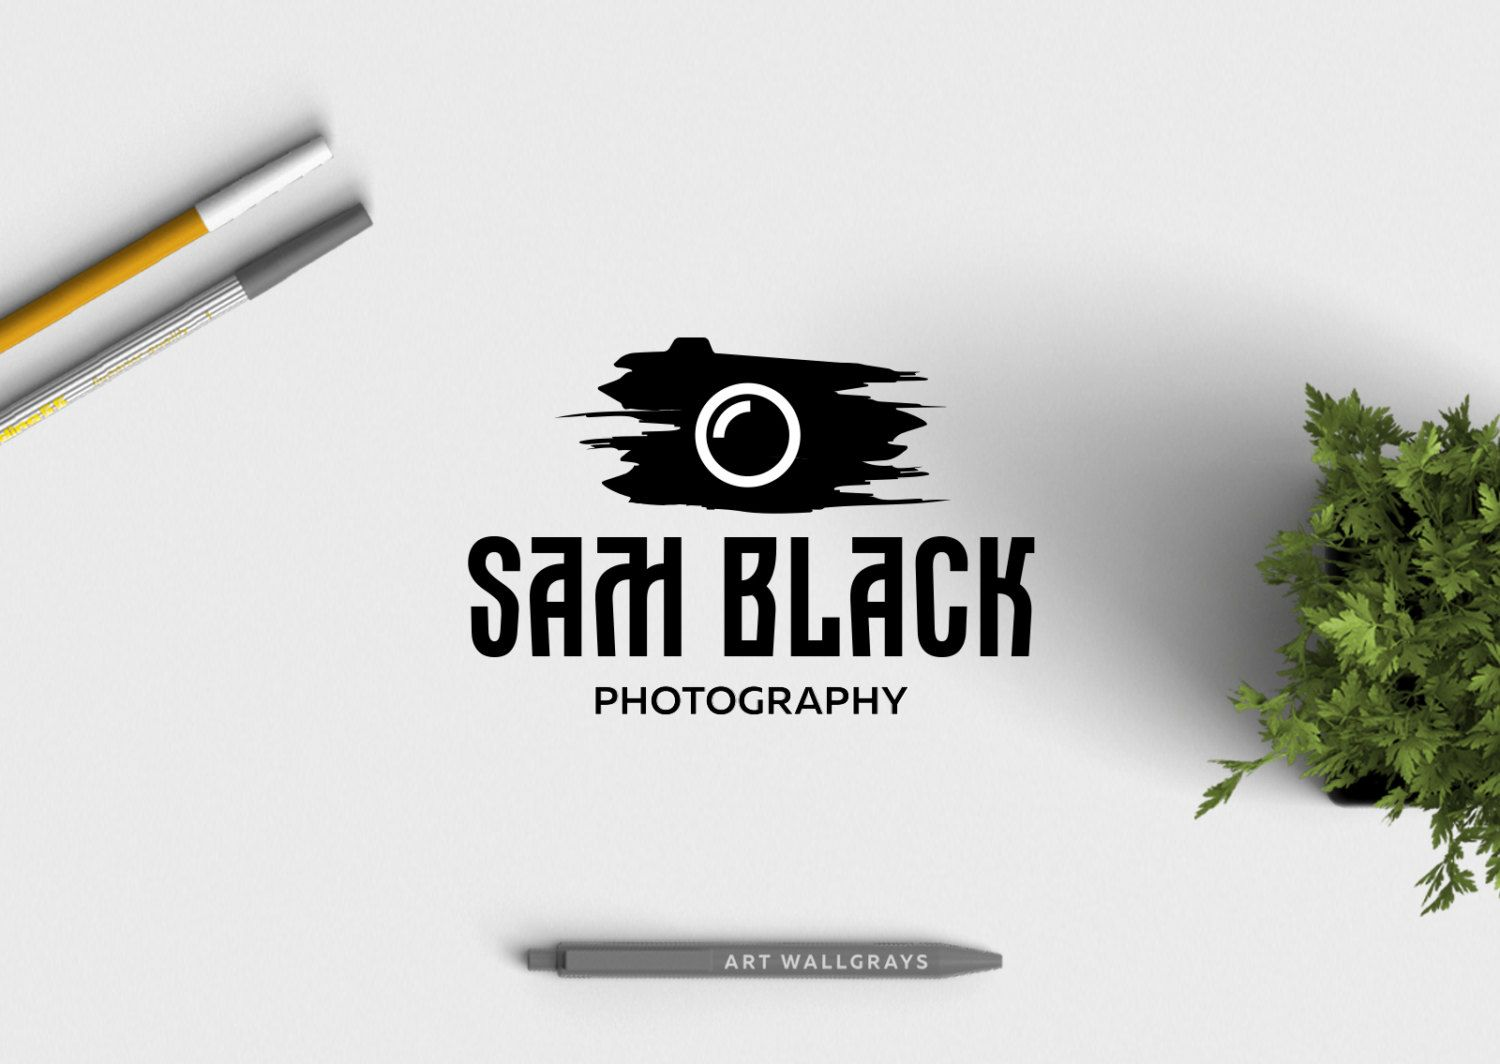 premade logo design camera brush watermark logo calligraphy design photography logo premade branding small business logo